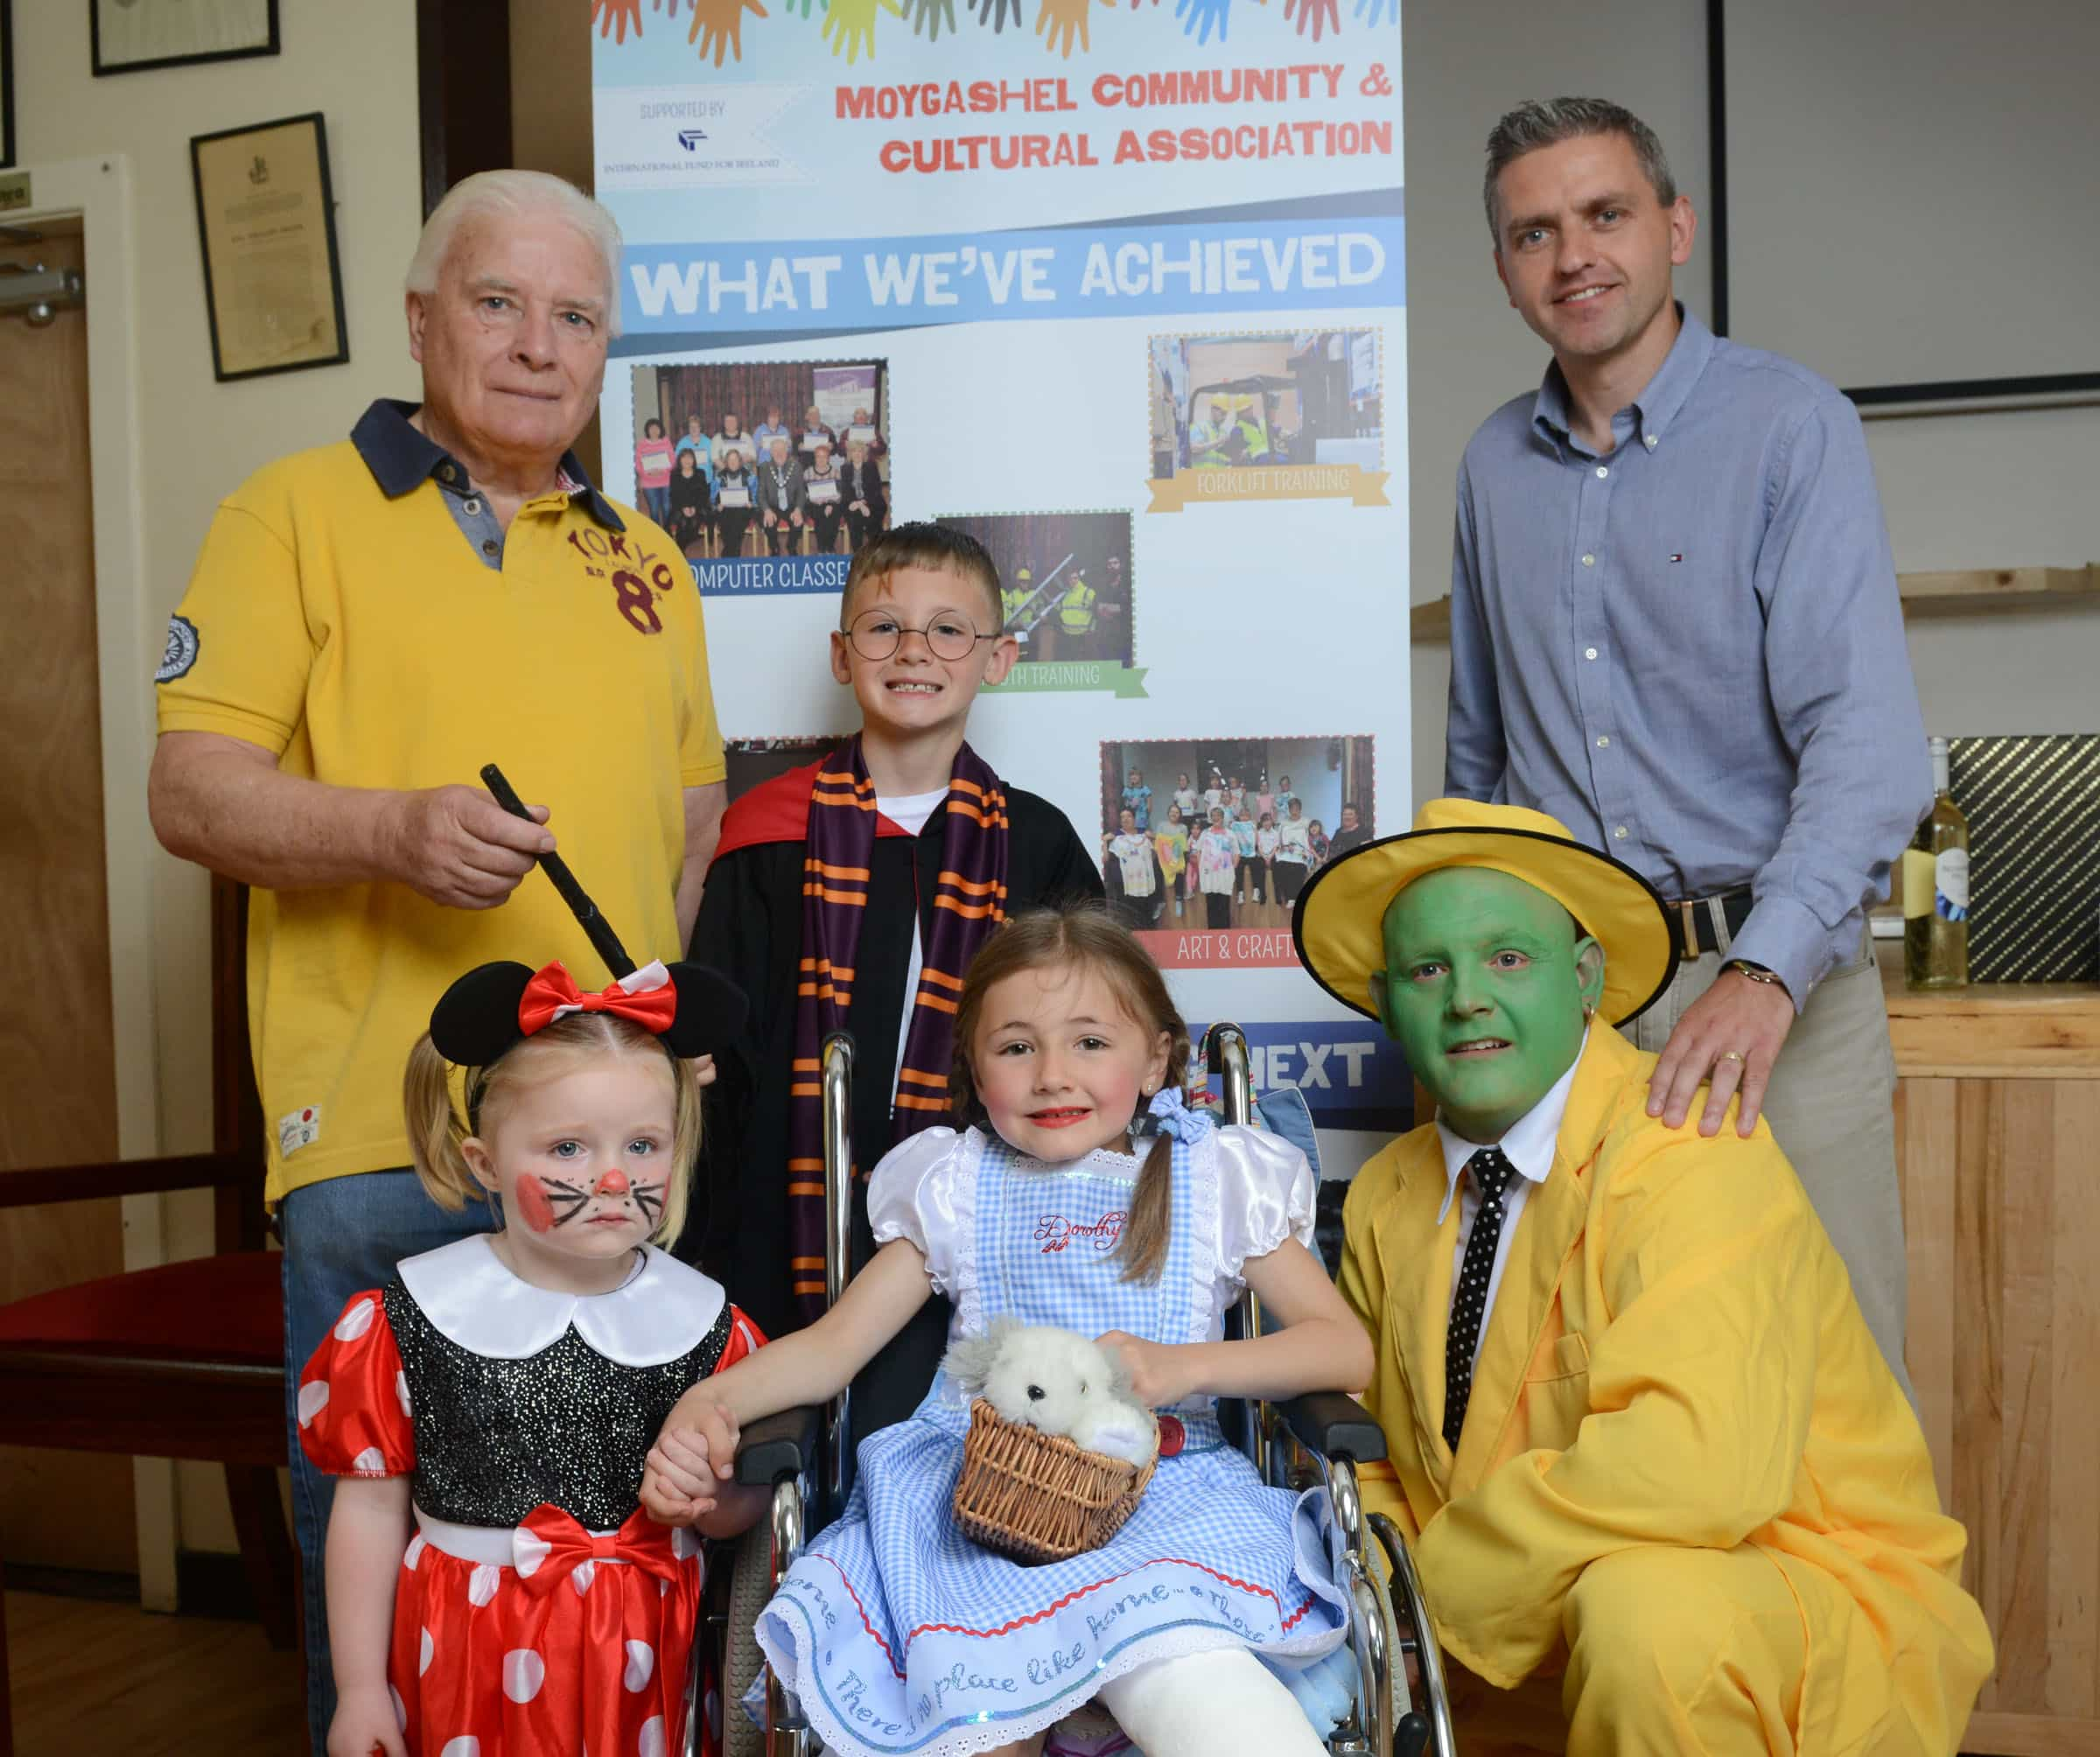 Community project paints a brighter future for Moygashel